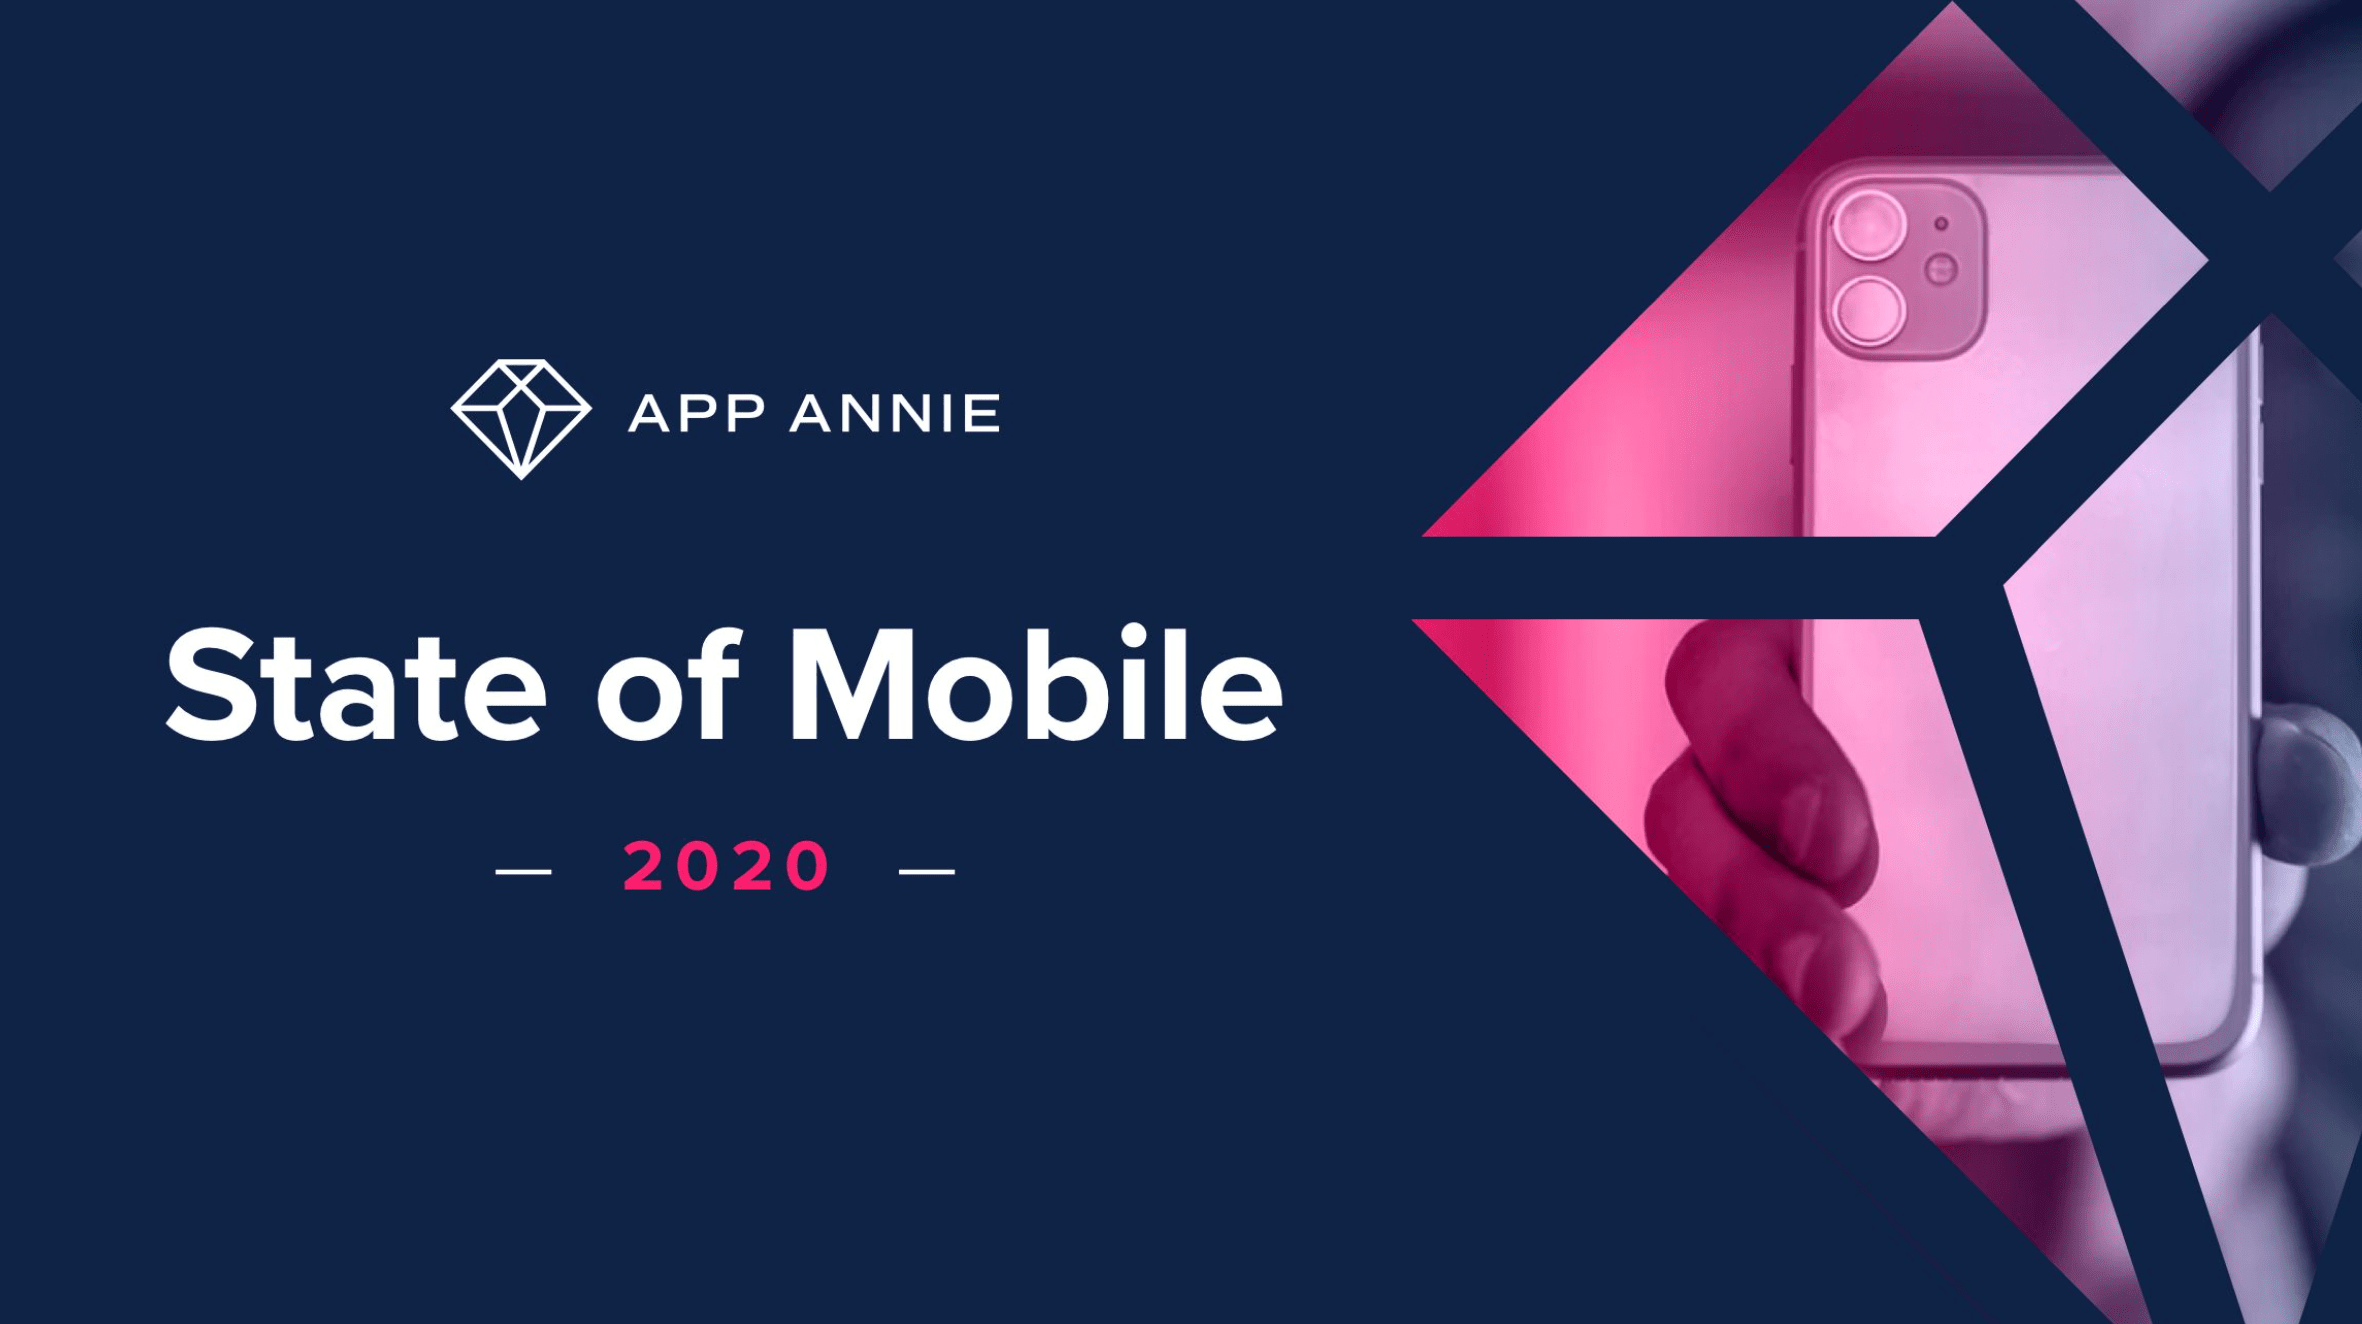 app annie state of mobile 2020